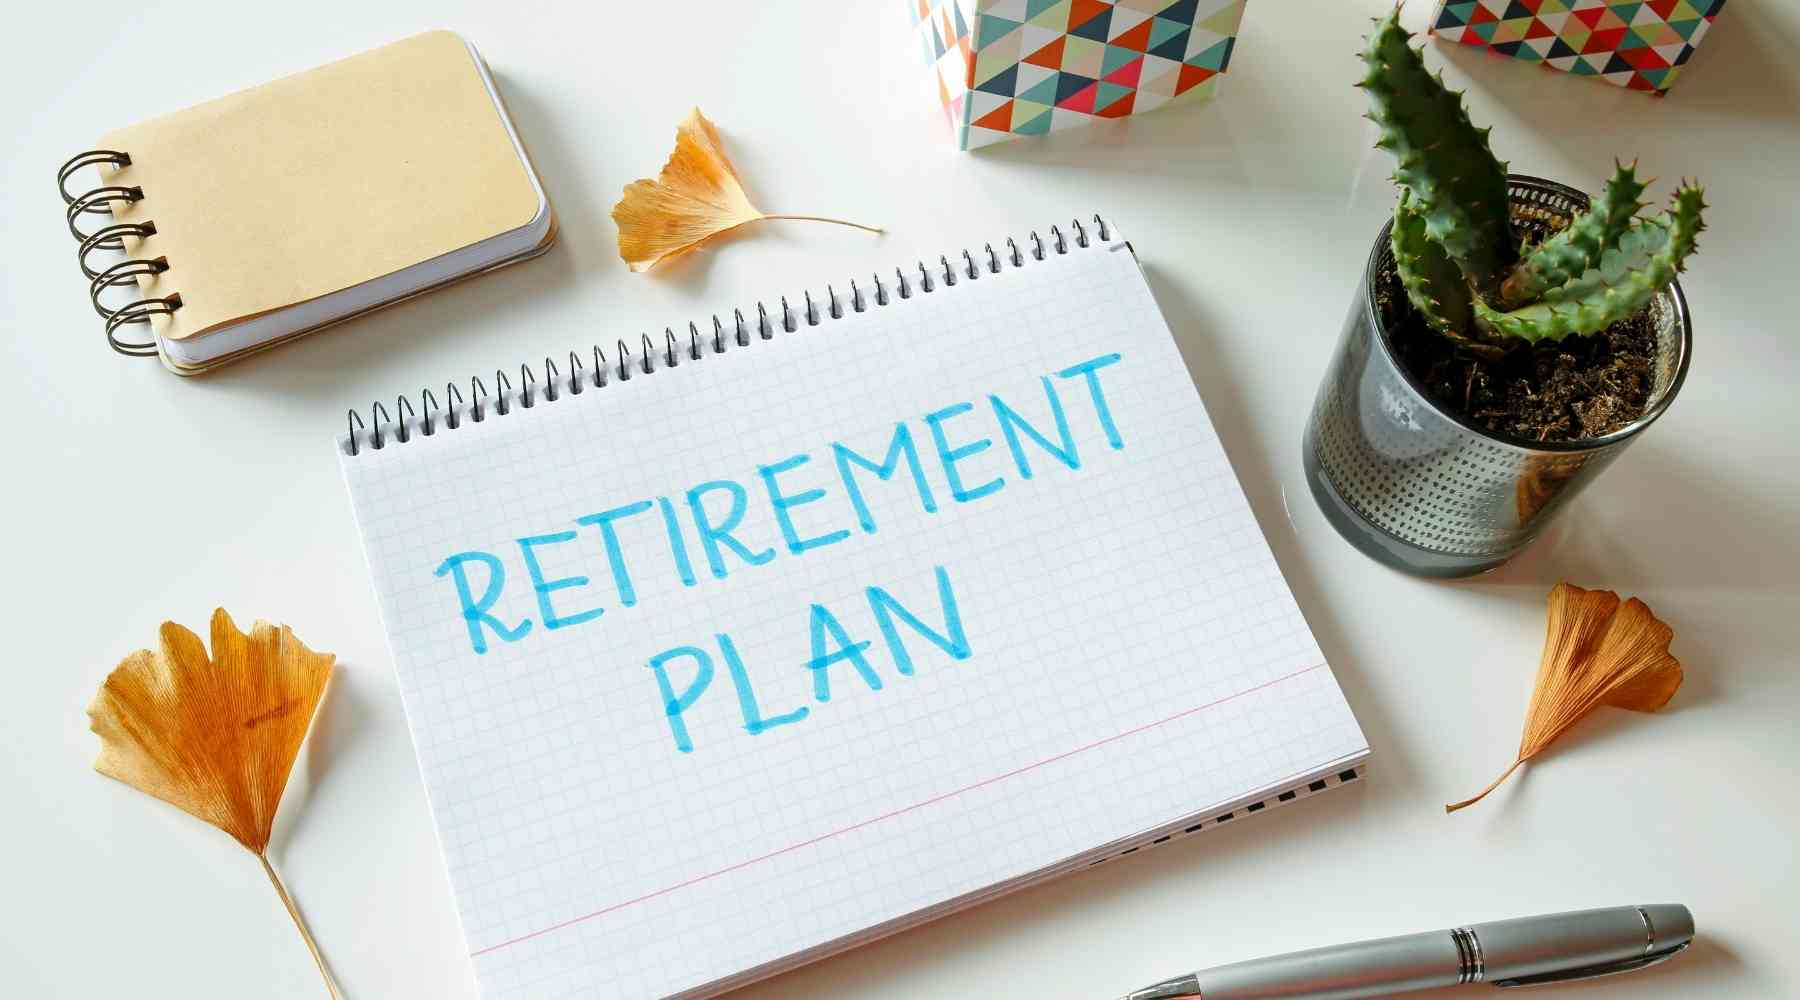 Become Fiscally Responsible - Invest for Retirement